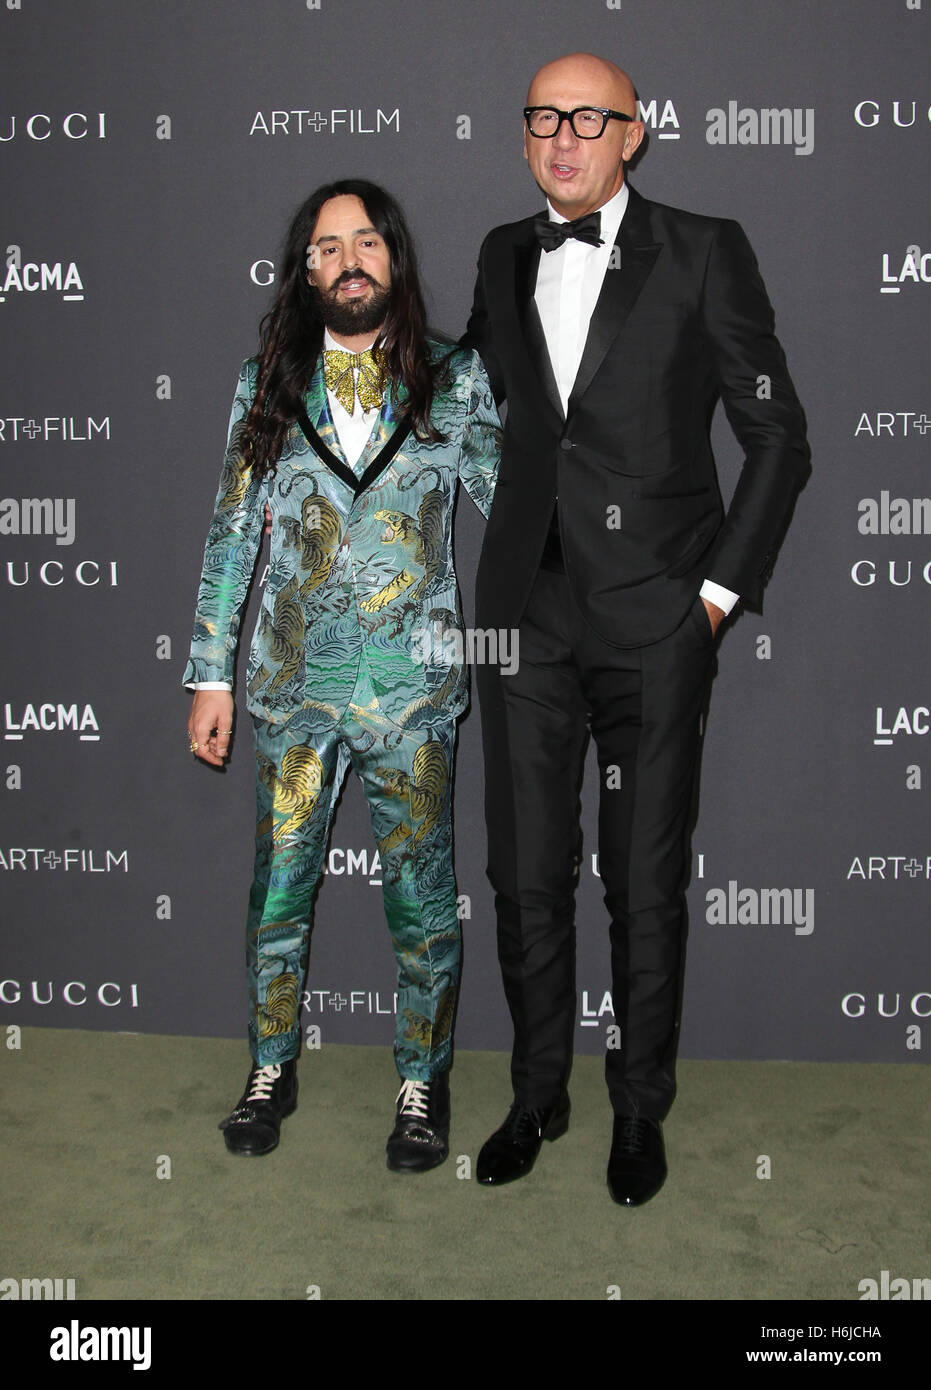 bcdf3b92f7ce7 Los Angeles, CA - OCTOBER 29  Alessandro Michele, Marco Bizzarri at the  2016 LACMA Art + Film Gala Honoring Robert Irwin And Kathryn Bigelow  Presented By ...